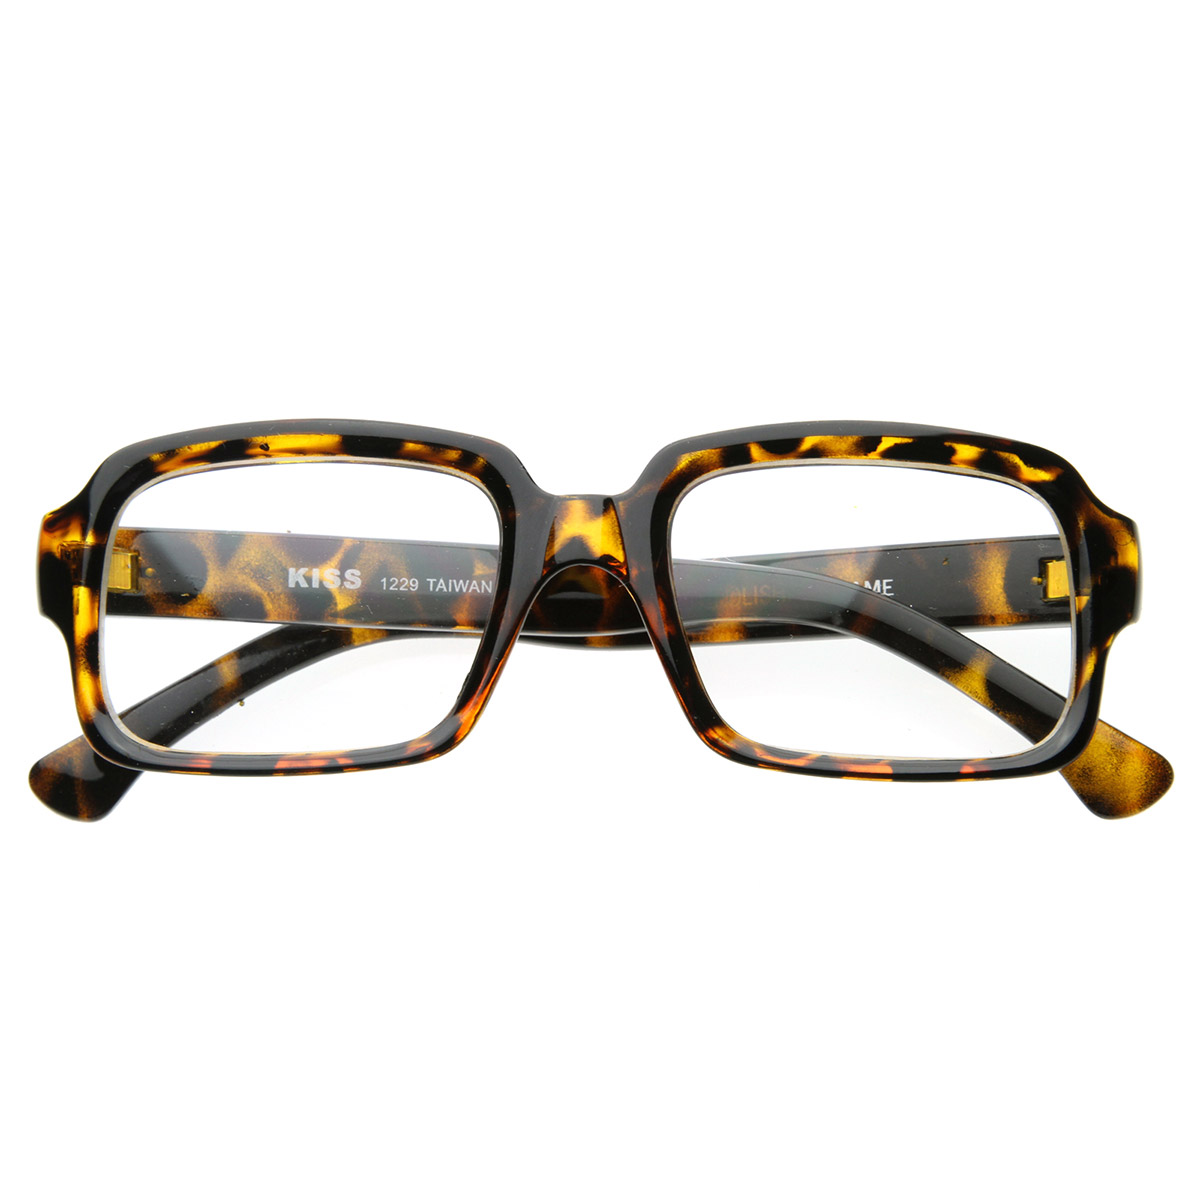 Big Thick Frame Glasses : Vintage Inspired Eyewear Thick Frame Bold Square Clear ...